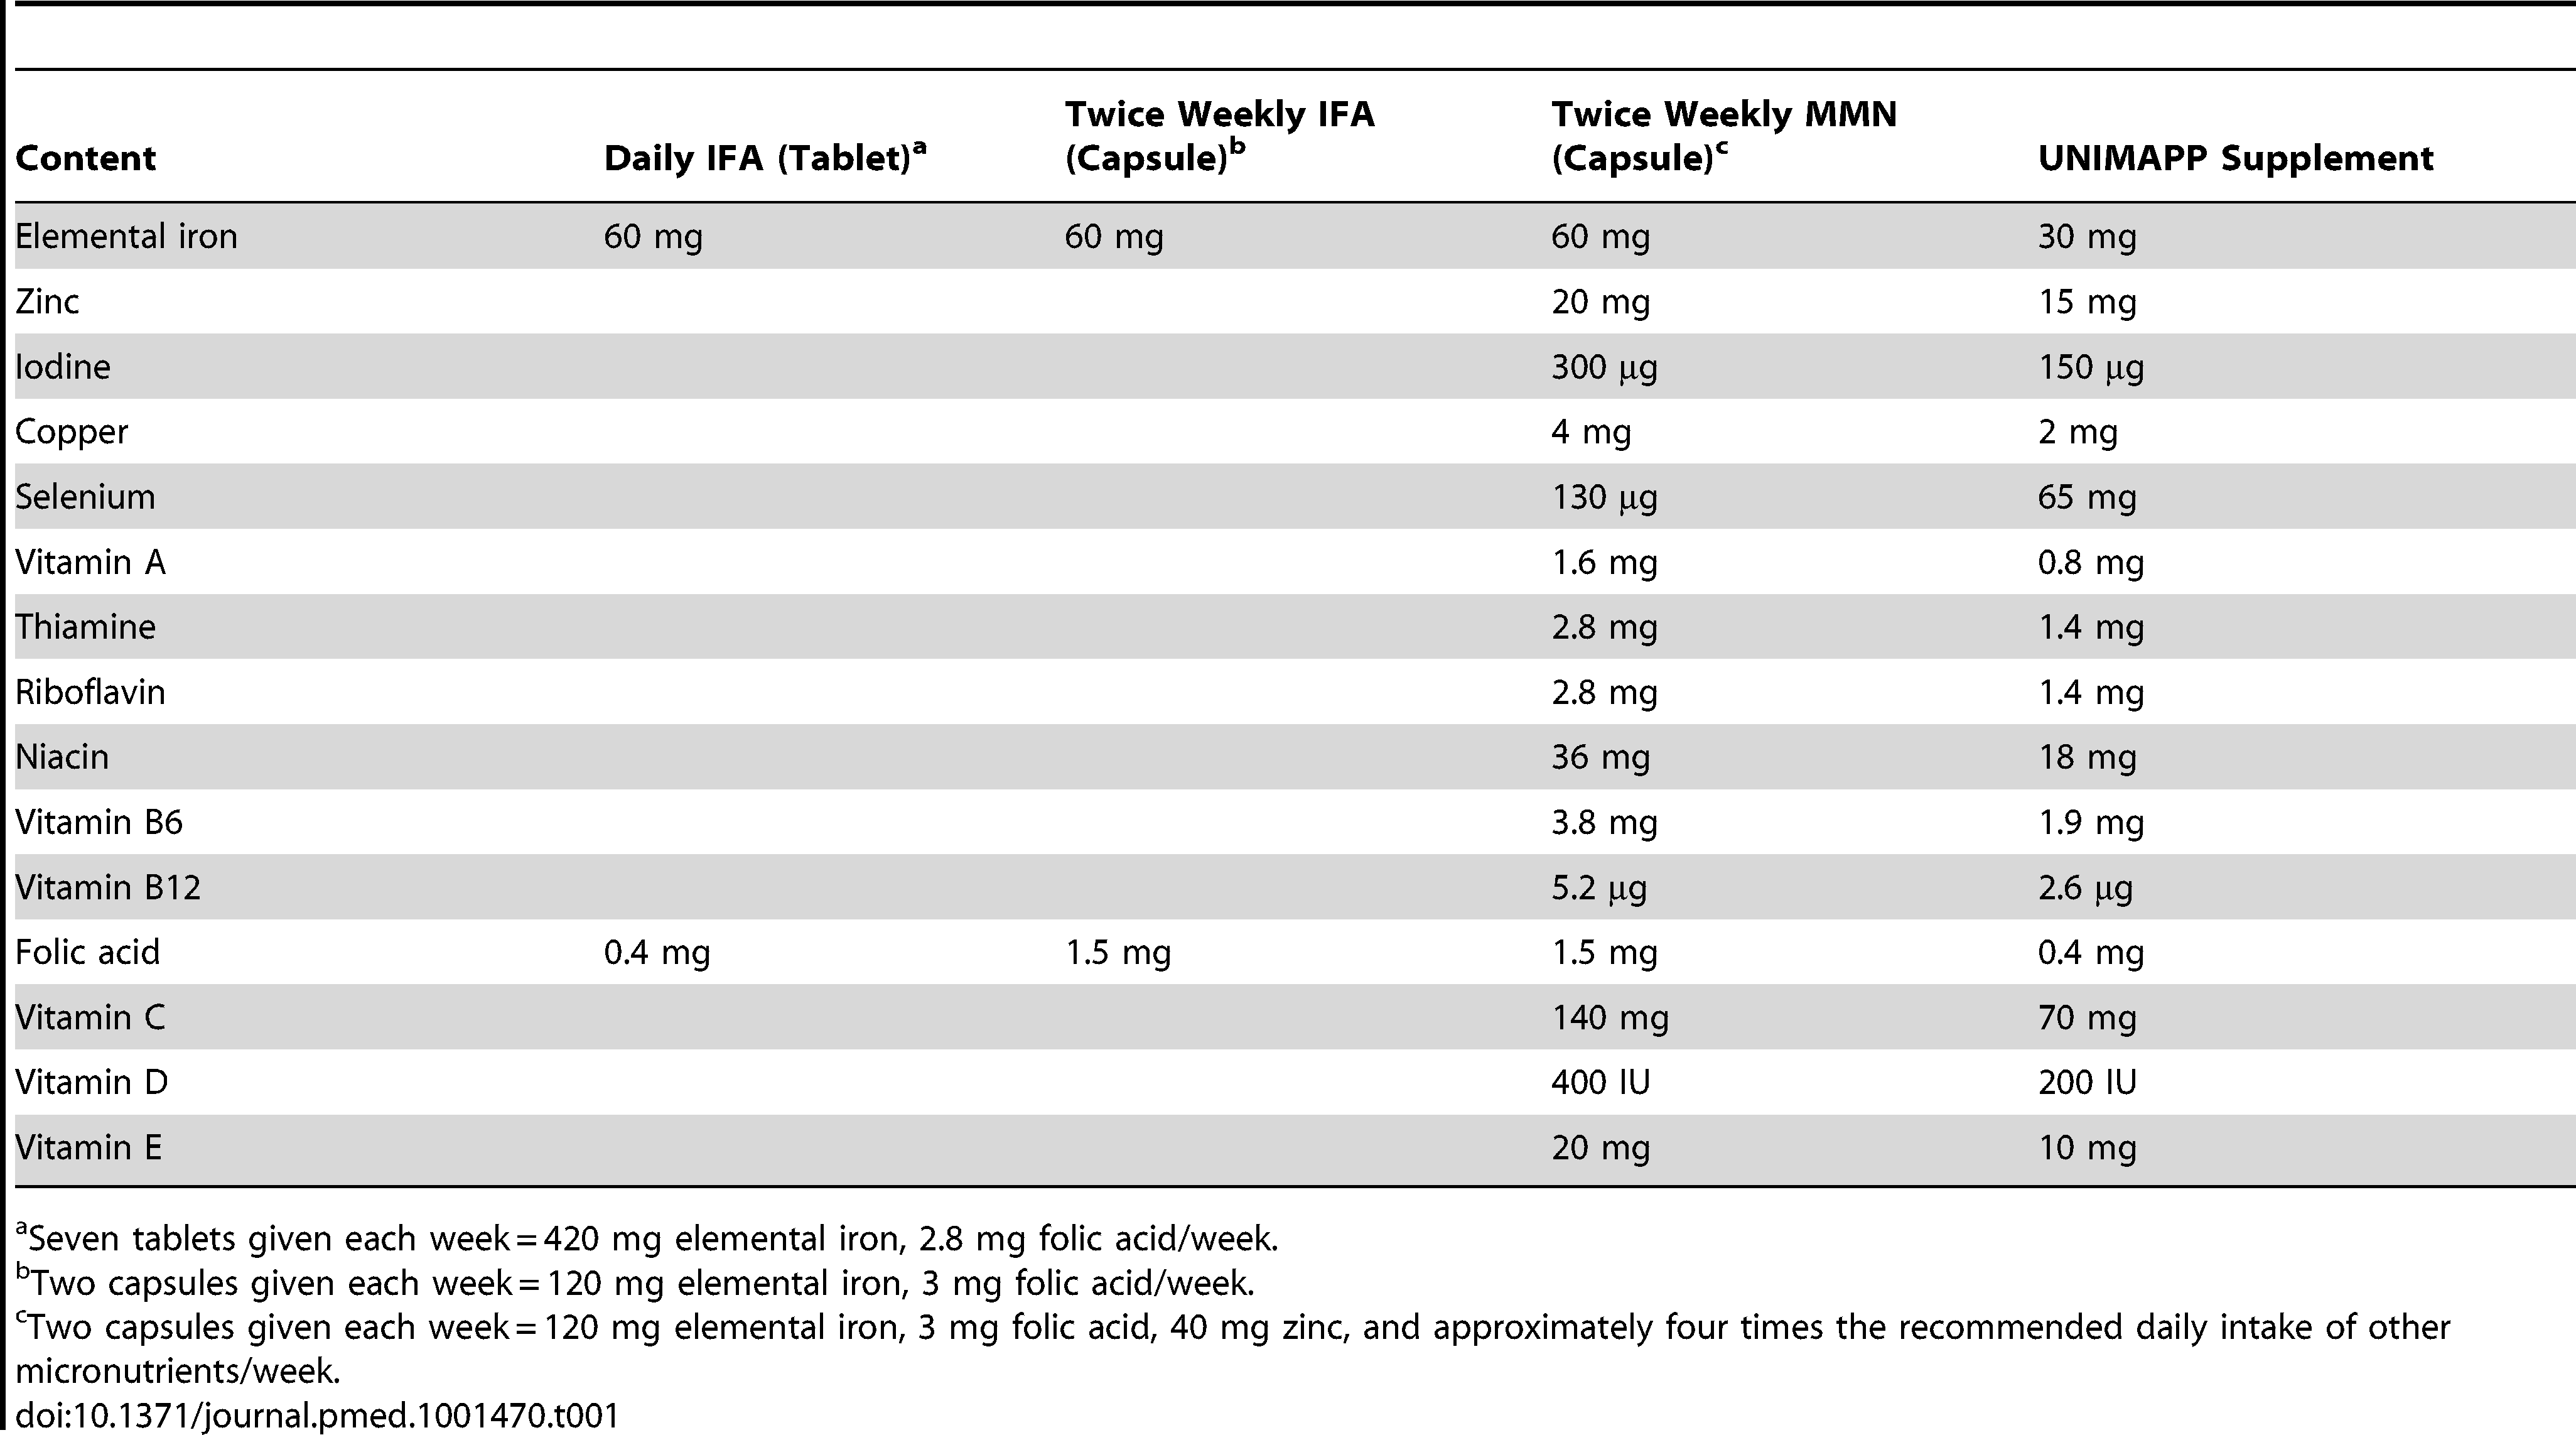 Composition per tablet or capsule used in the three arms of the study, in comparison to the United Nations Children's Fund/WHO UNIMAPP supplement <em class=&quot;ref&quot;>[24]</em>.